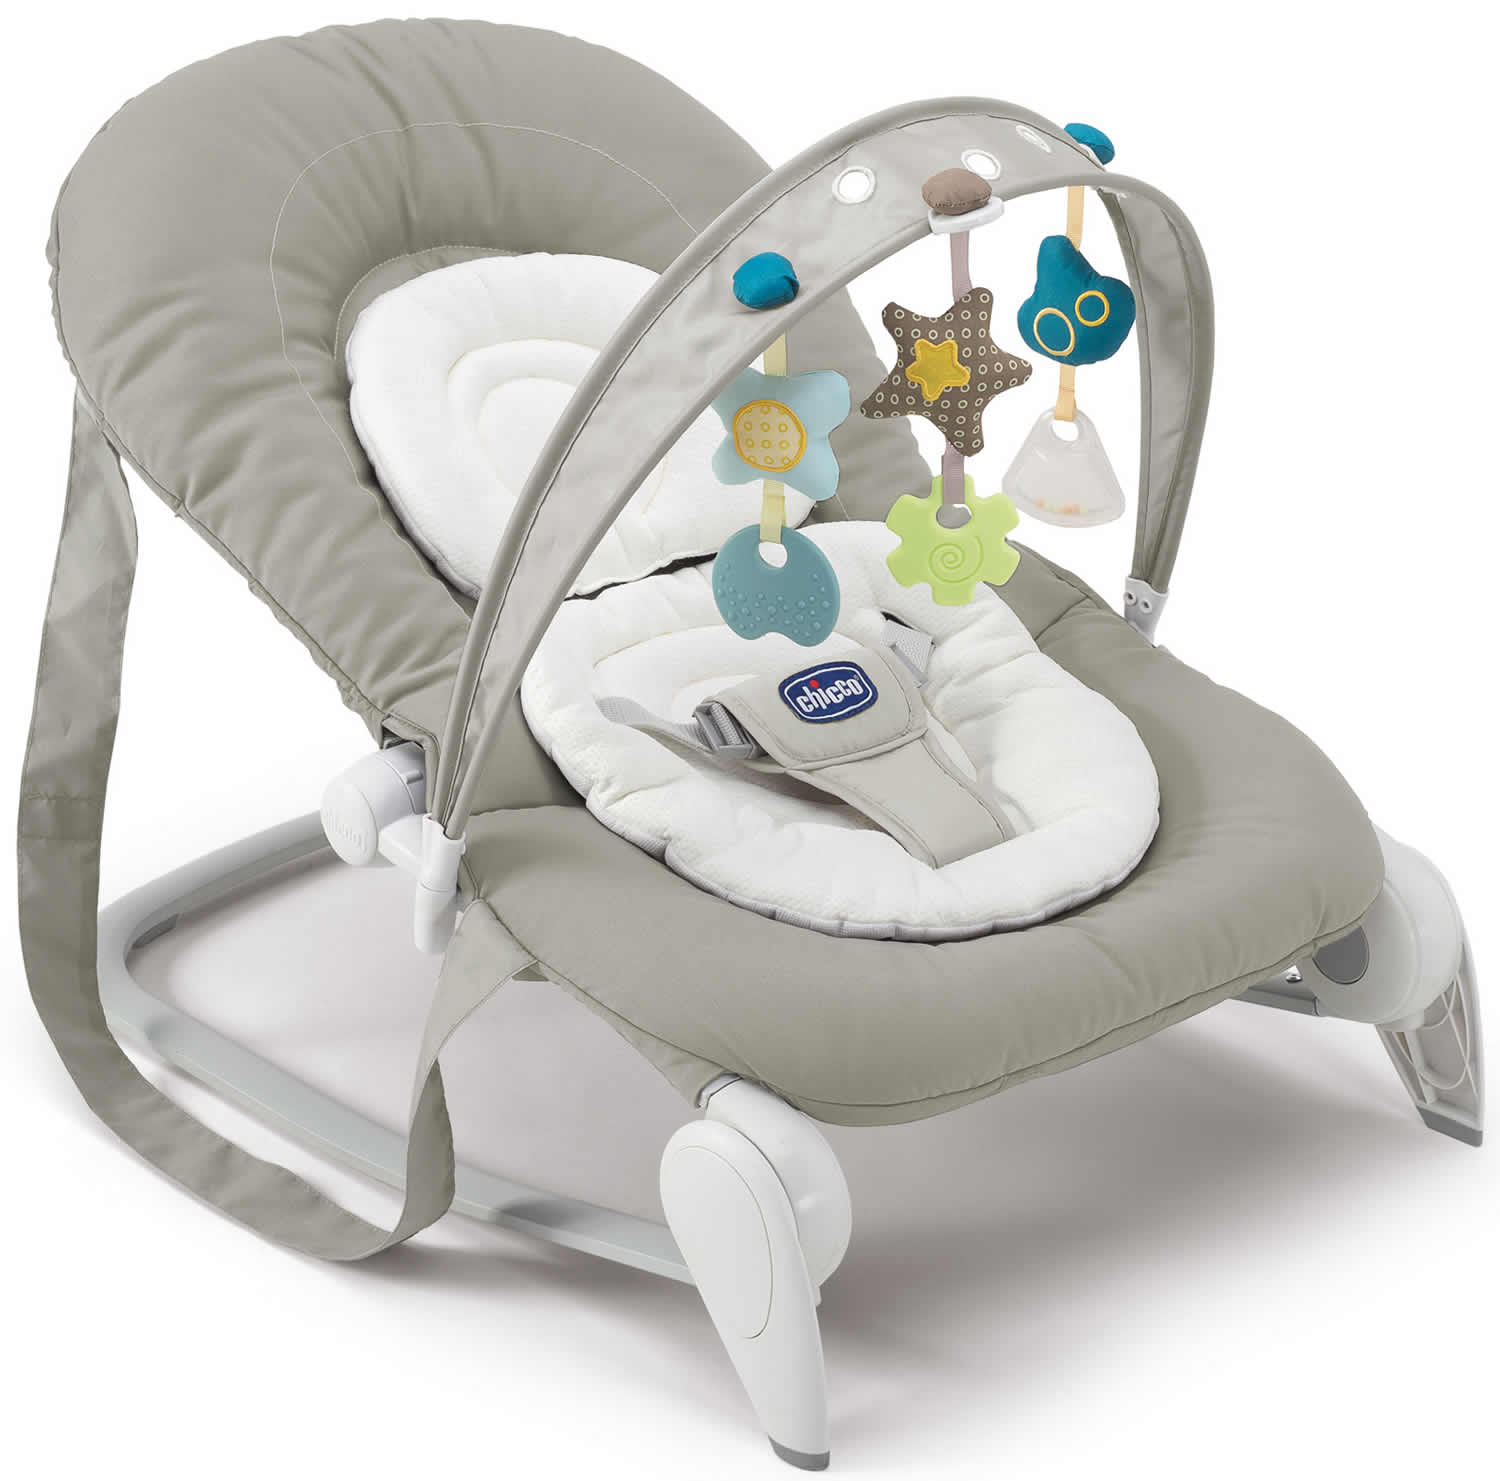 Wippe Baby Chicco Hoopla Babywippe Wippe Schaukelwippe Ebay